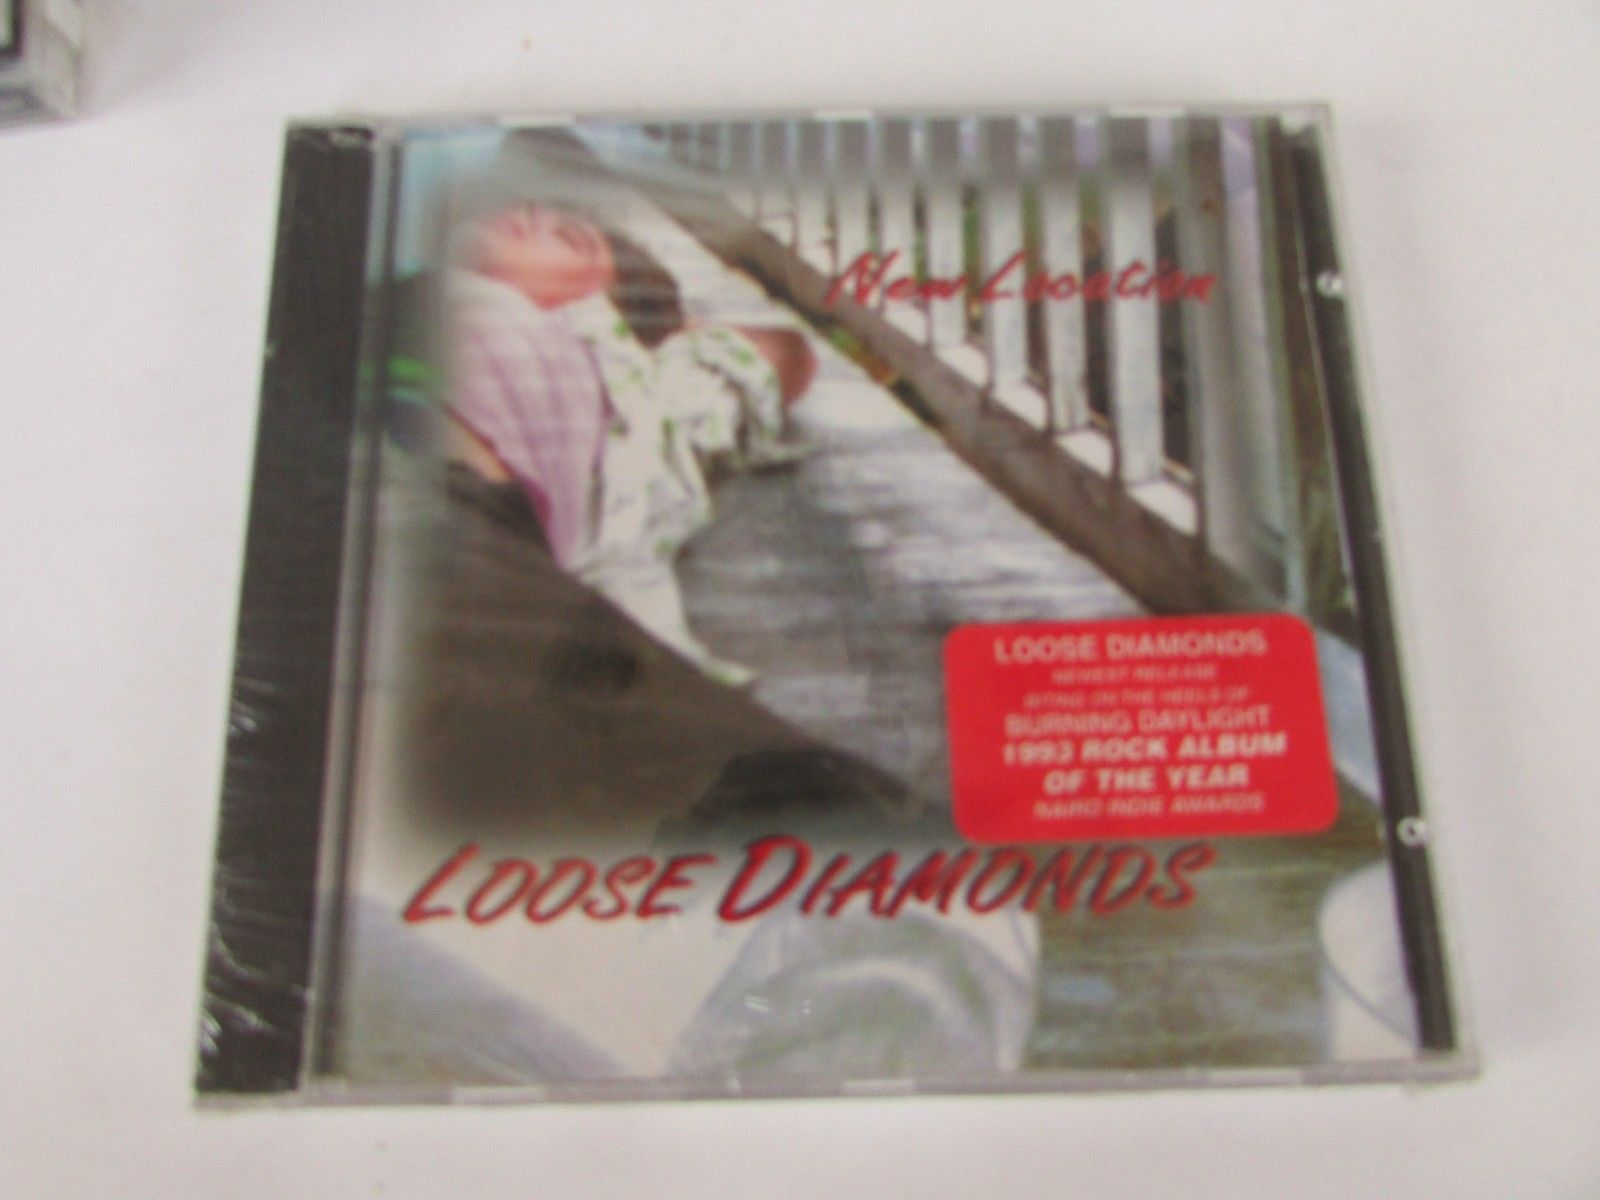 Primary image for New Location by Loose Diamonds CD 1994 DOS RECORDS NEW SEALED